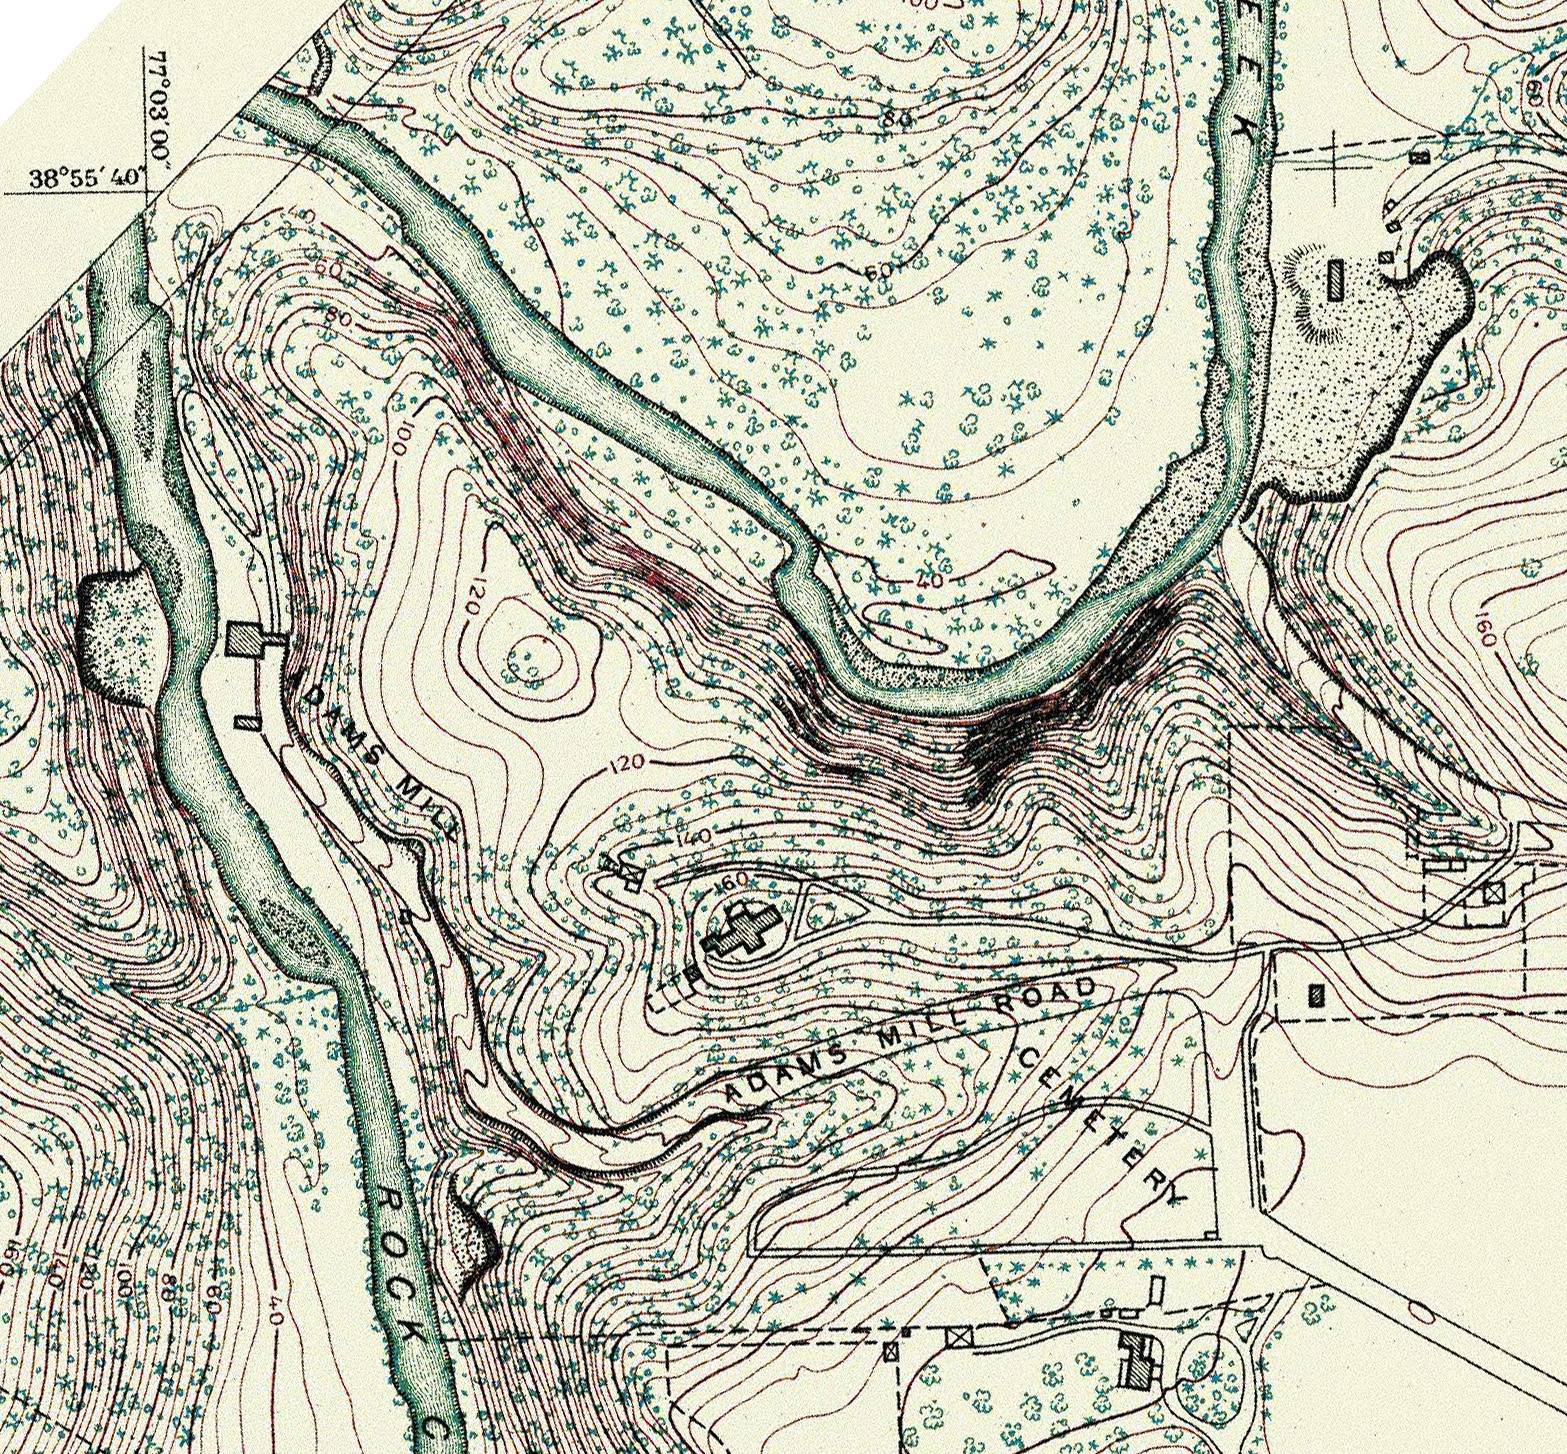 Historical Maps The Walter Pierce Park Cemeteries - Us coast and geodetic survey maps